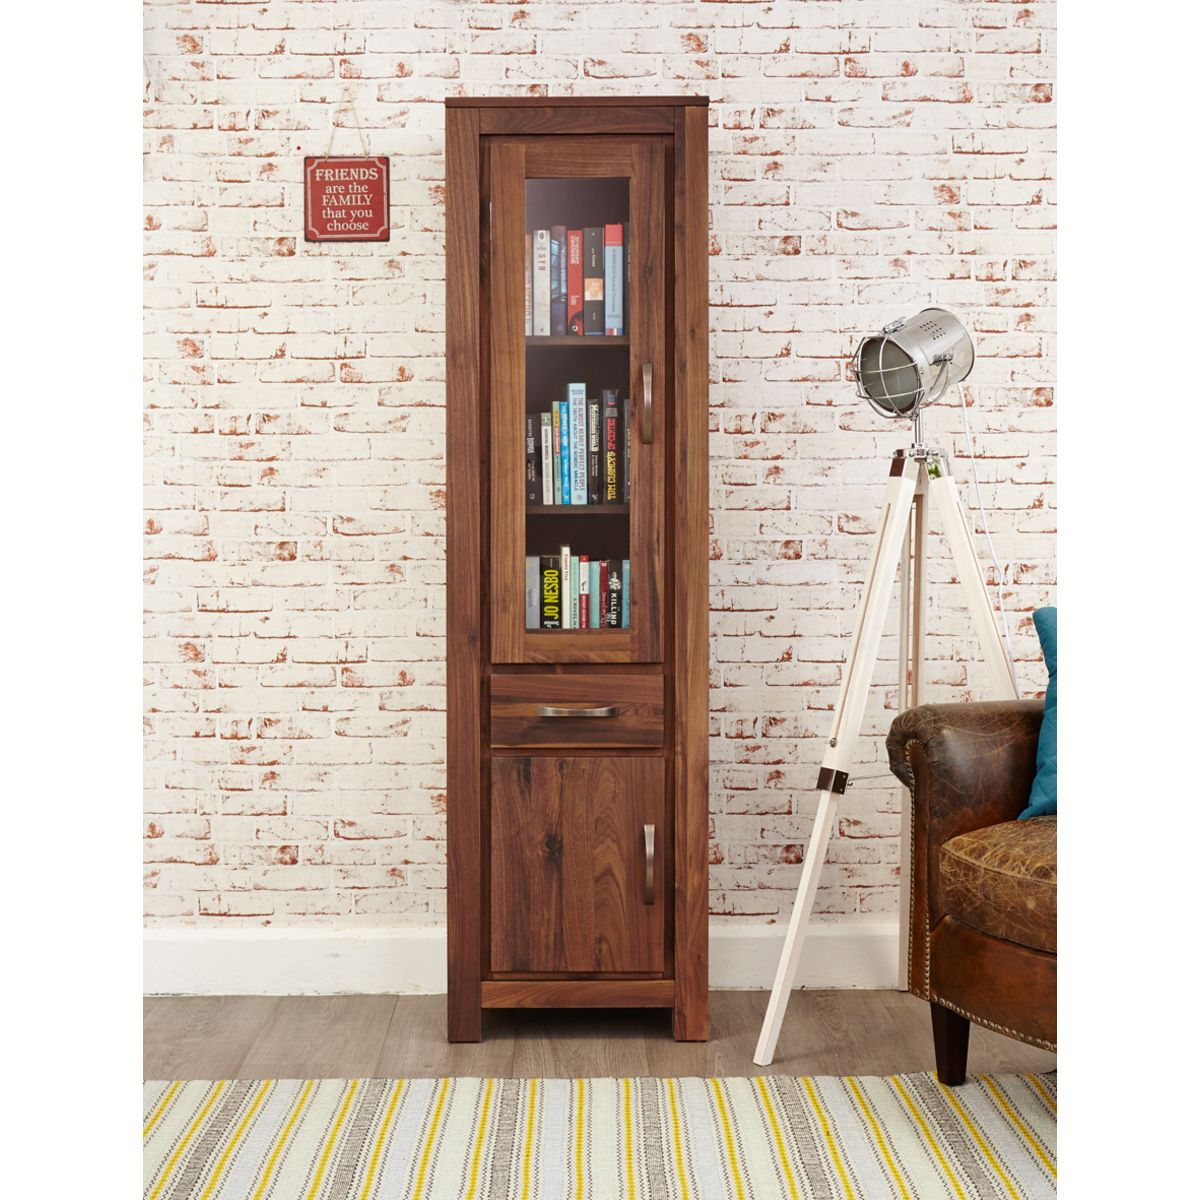 Mayan Walnut Narrow Glazed Bookcase Wooden Furniture Store